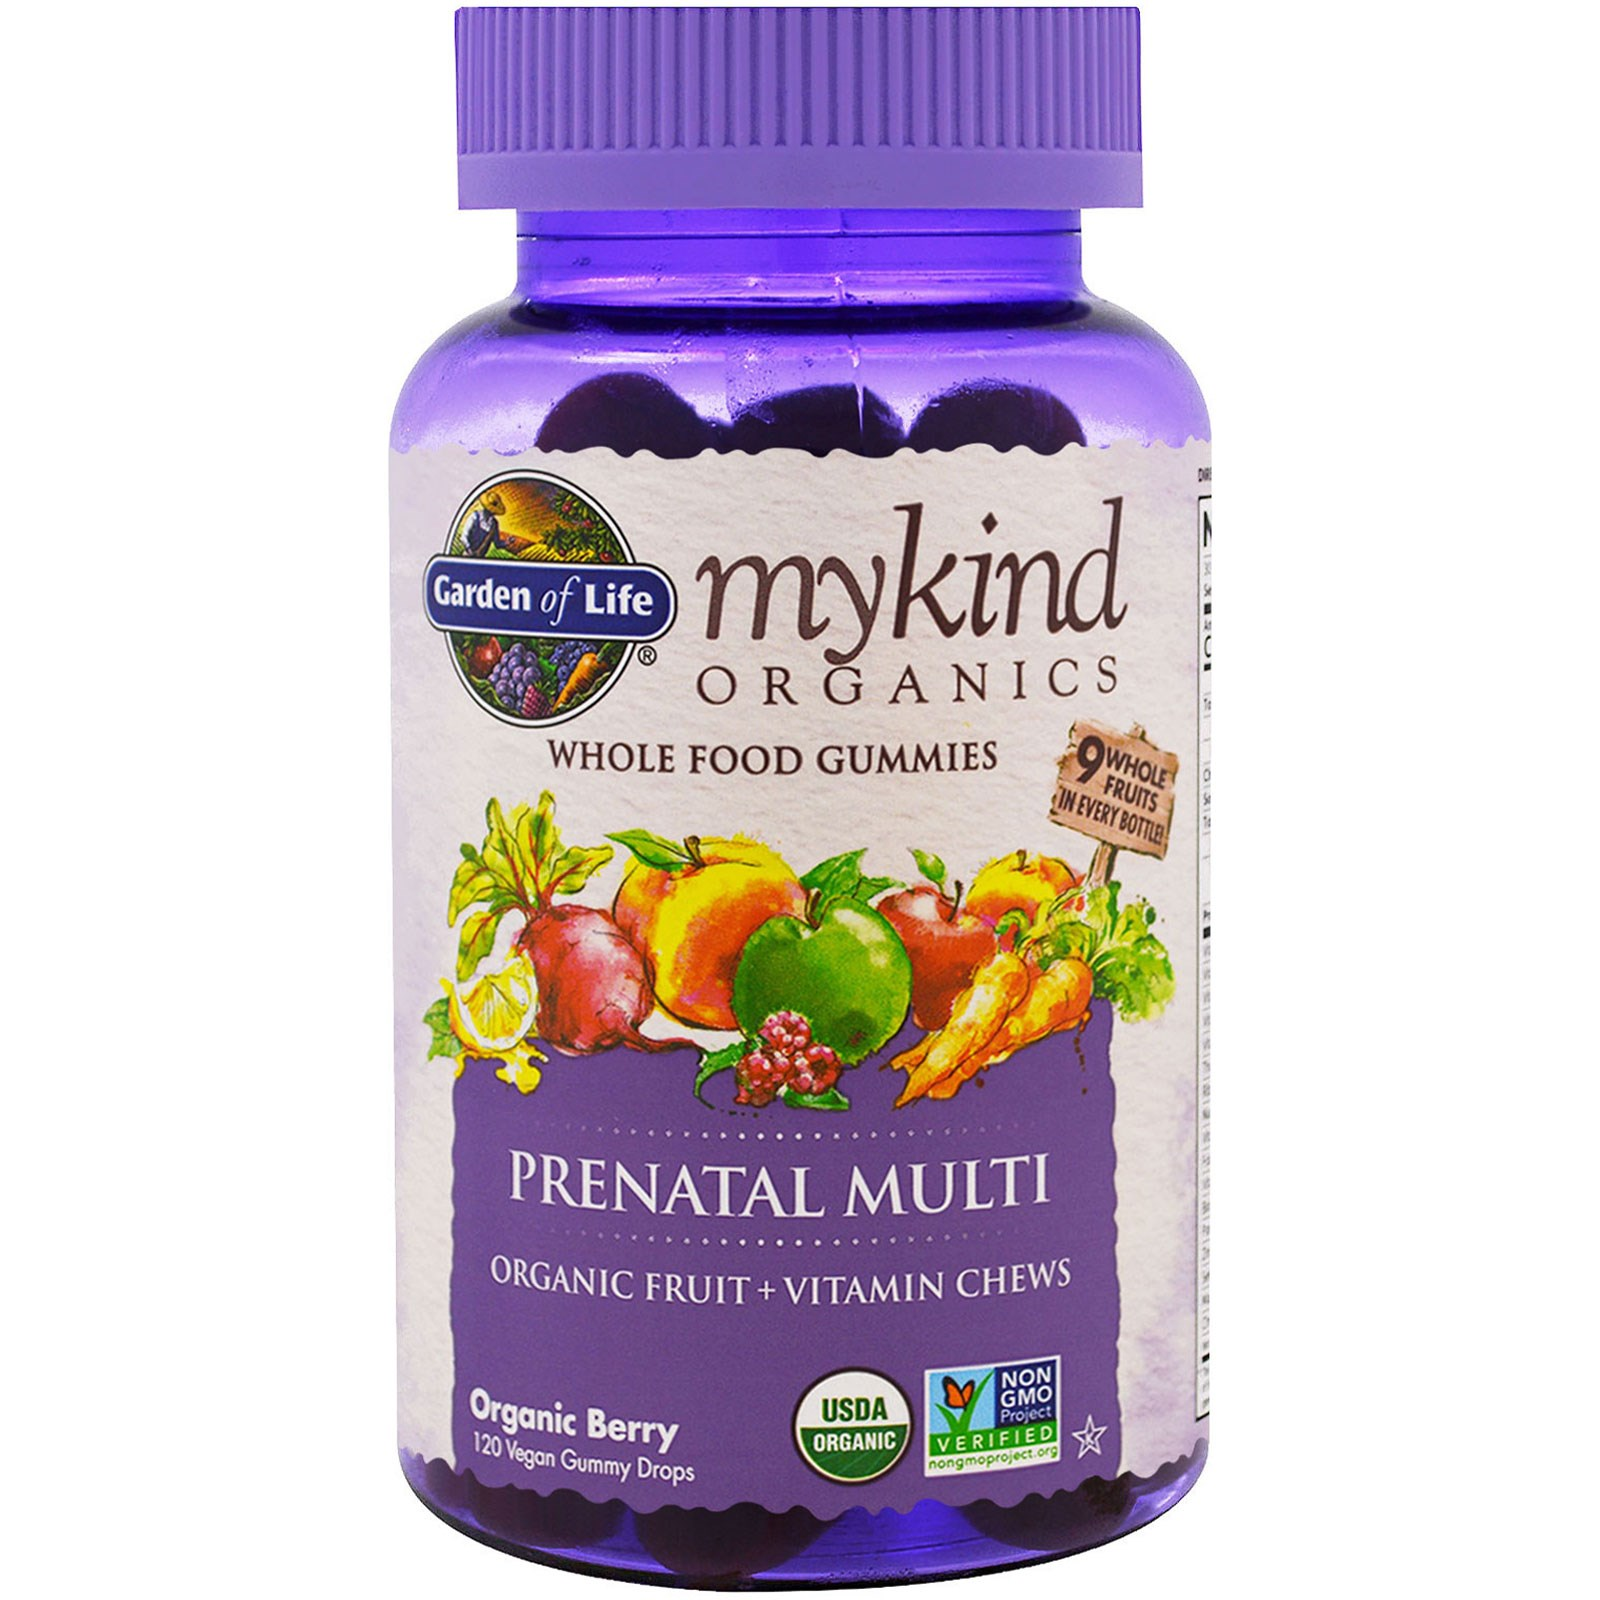 prenatal purenatal health tablets of care made stomach organic synergy veggies reviews w amazon pure dp vitamin gentle on personal life garden com fruits